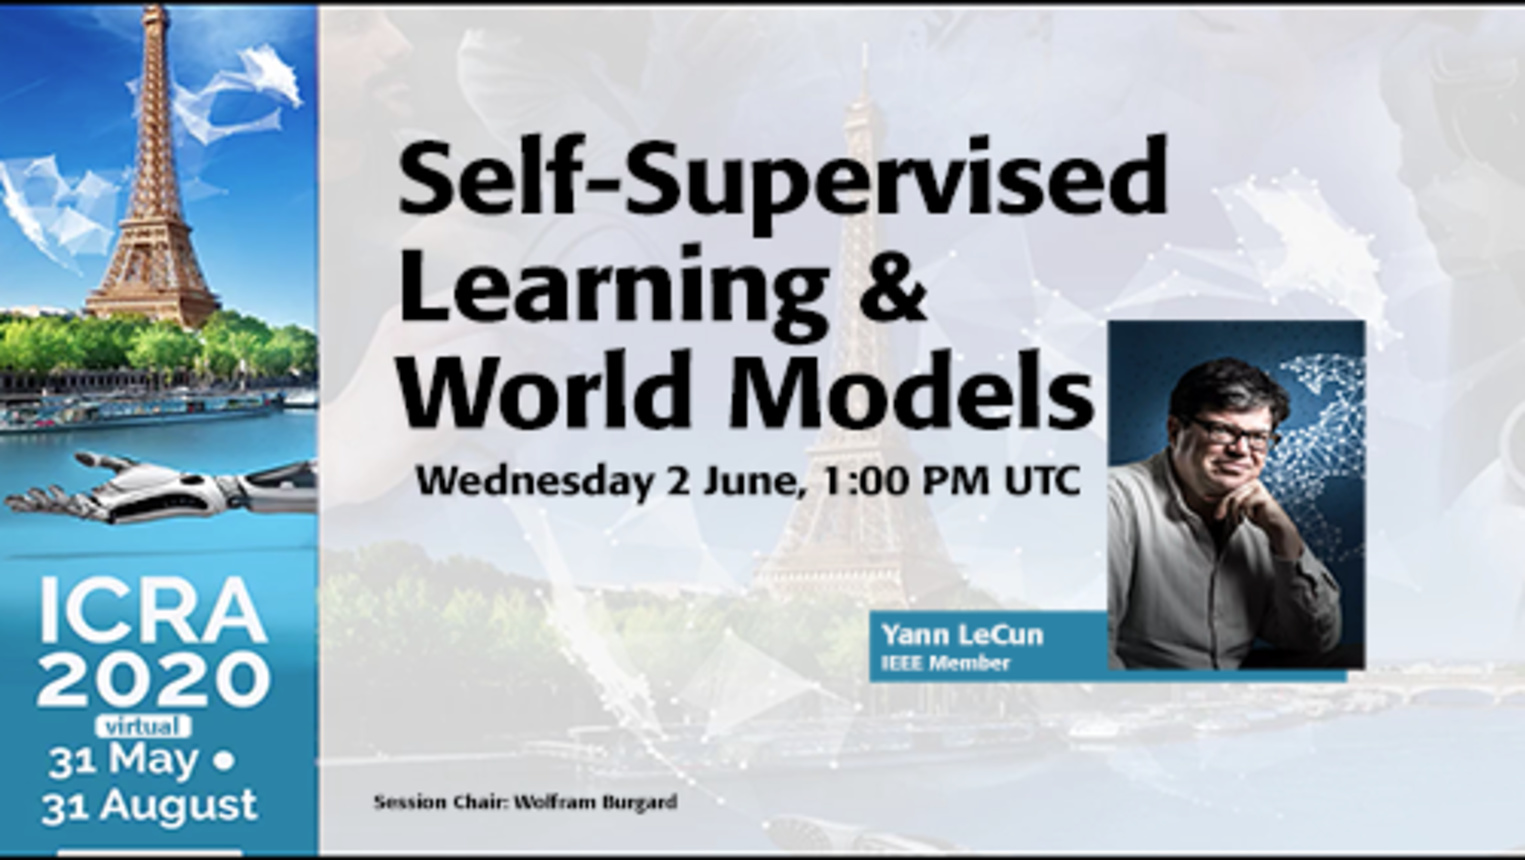 Self-Supervised Learning & World Models - ICRA 2020